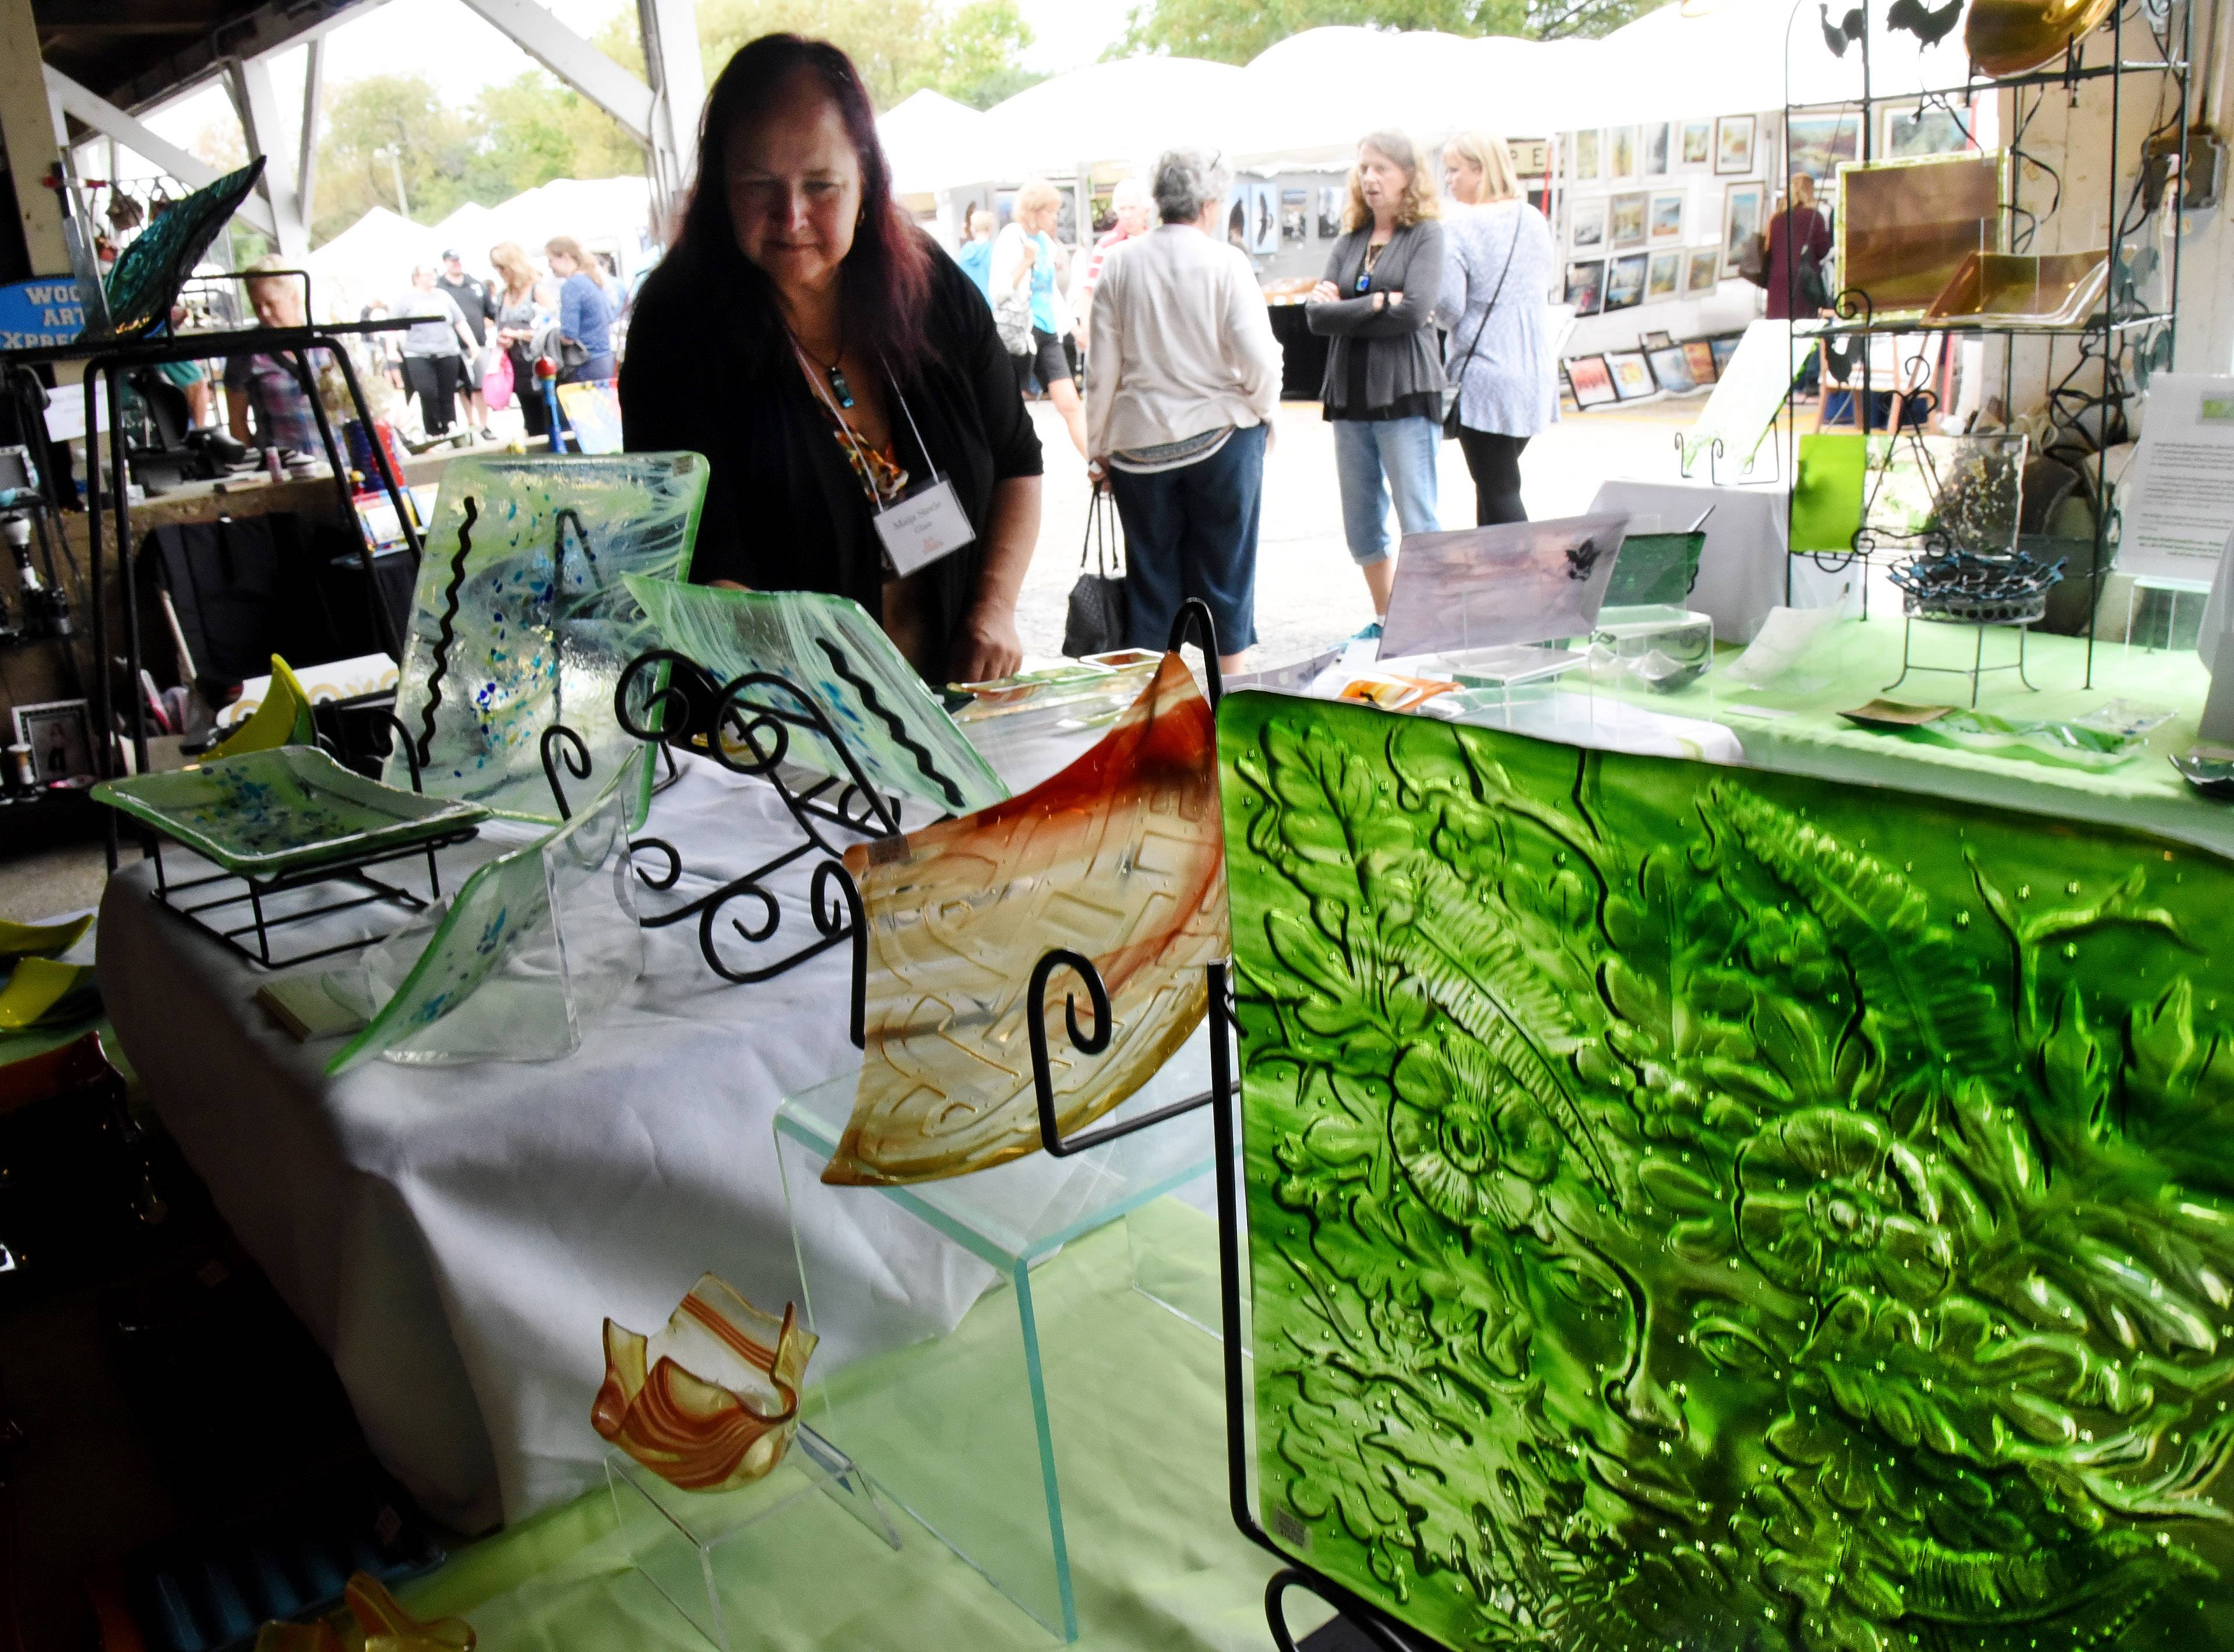 Marija Steele of Crystal Lake displays her fused glass art at Art in the Barn on the grounds of Advocate Good Shepherd Hospital. This year's show will feature the work of 175 artists.